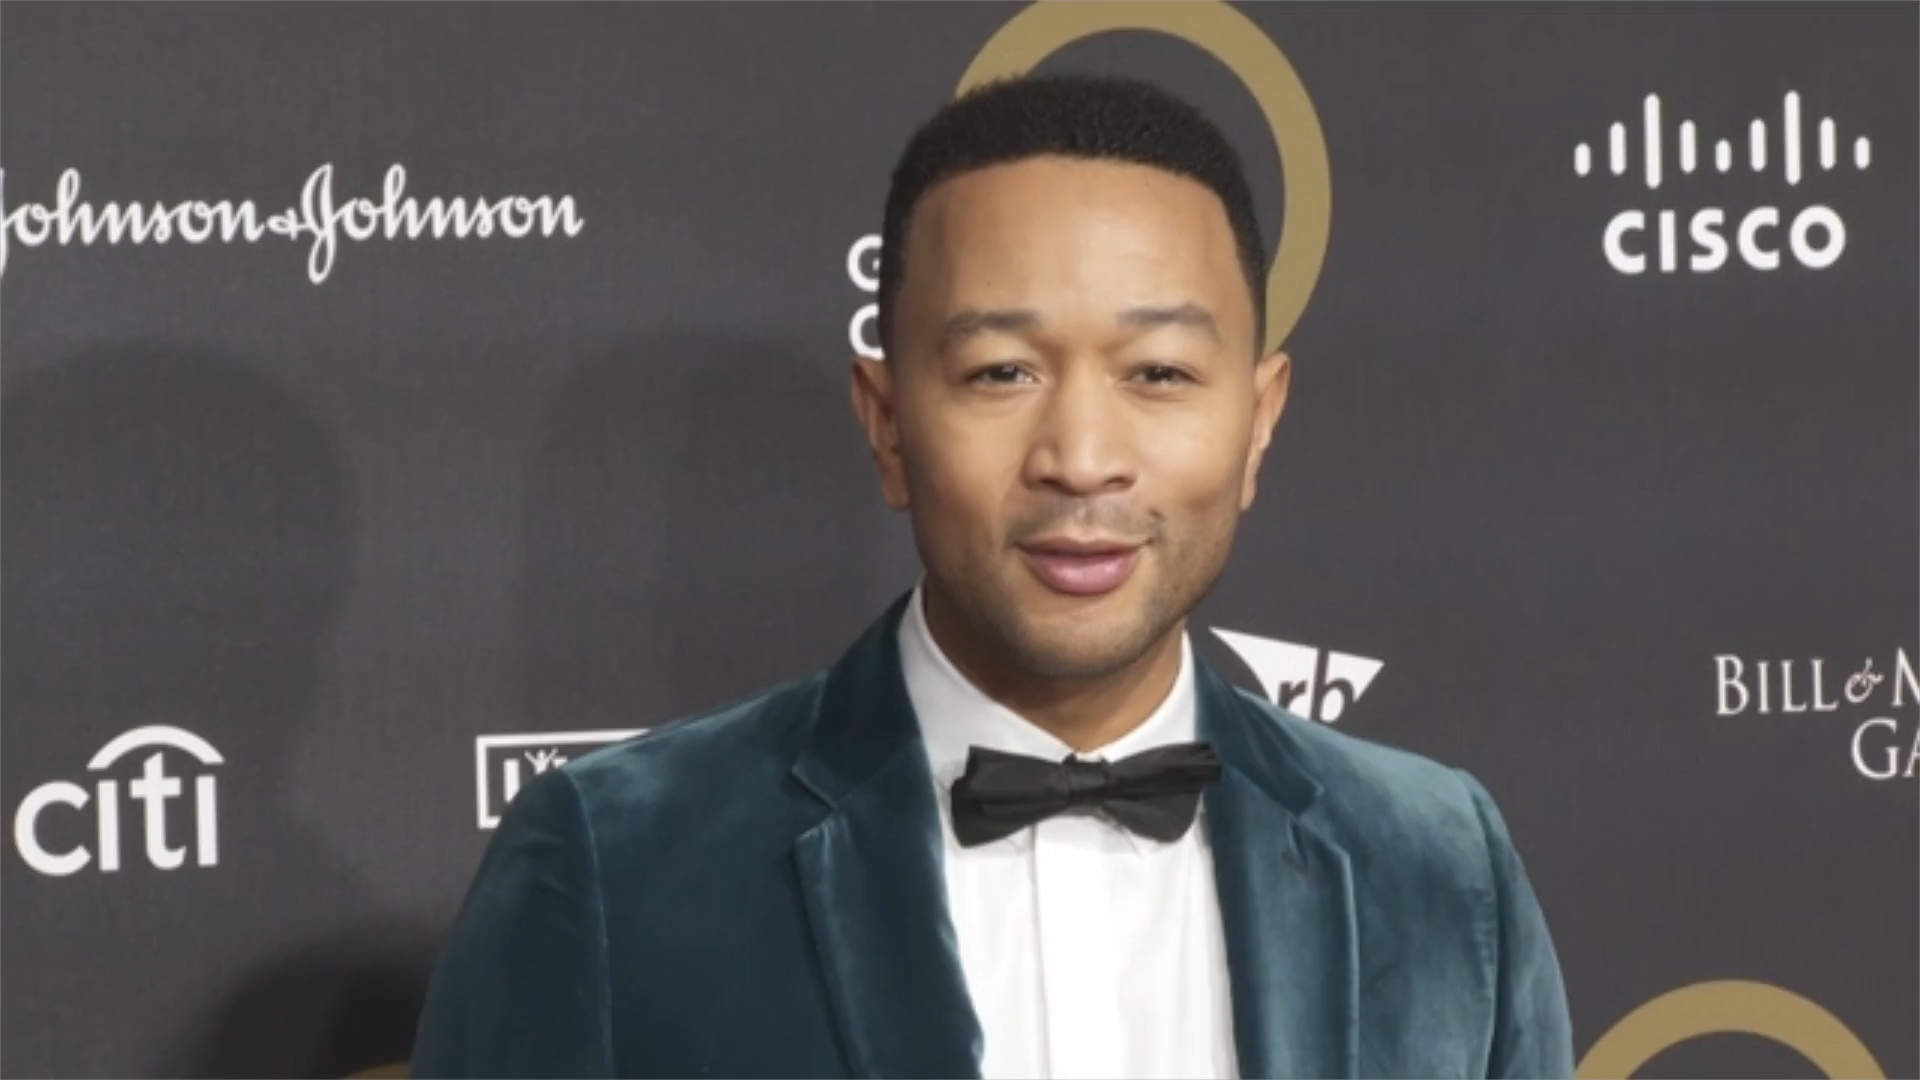 John Legend marks 15th anniversary of his major label debut with 41st birthday post